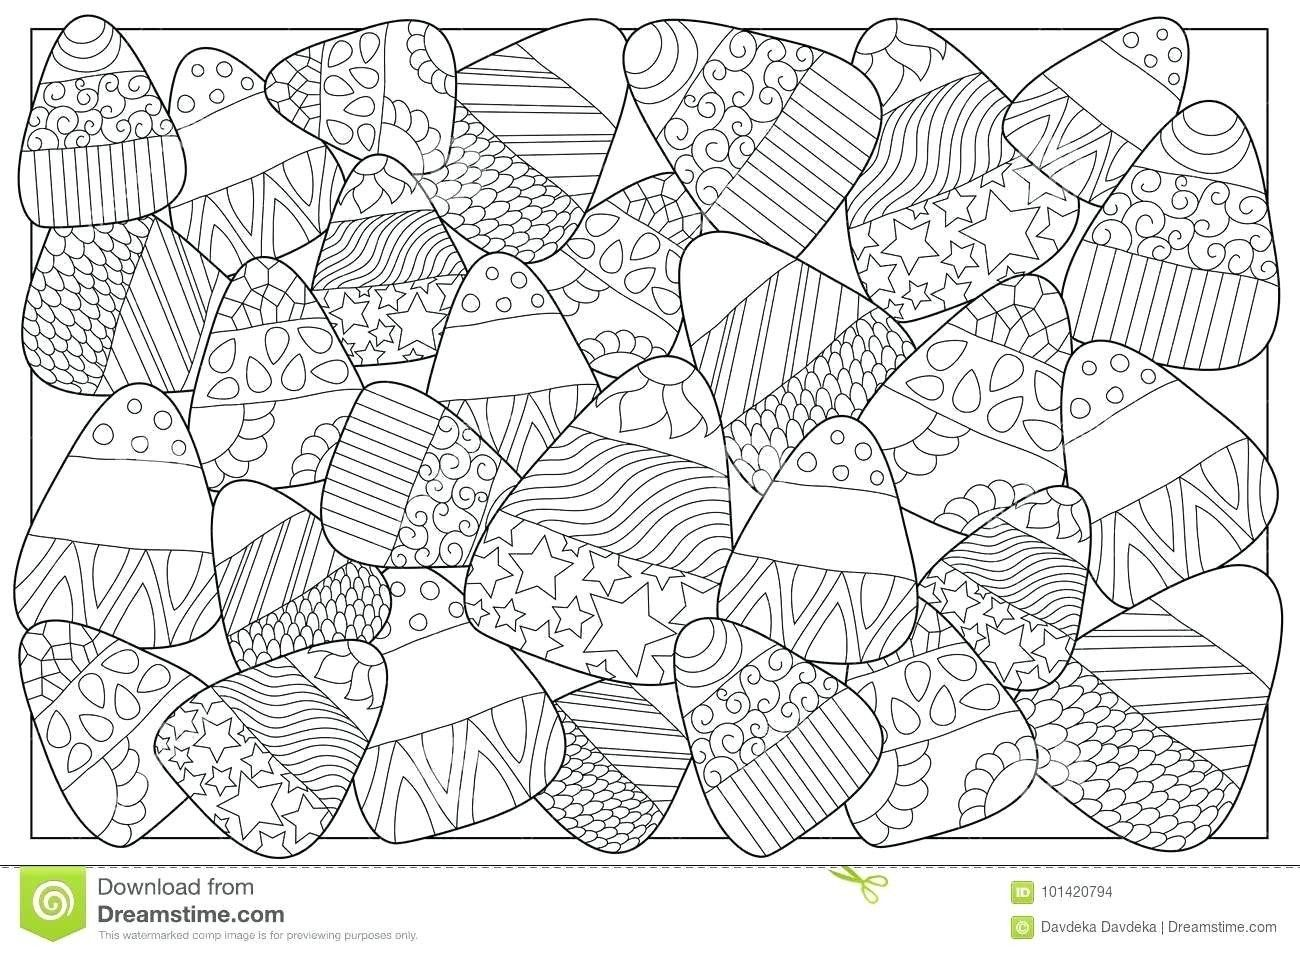 Candy Corn Coloring Page Inspirational Coloring Page Candy